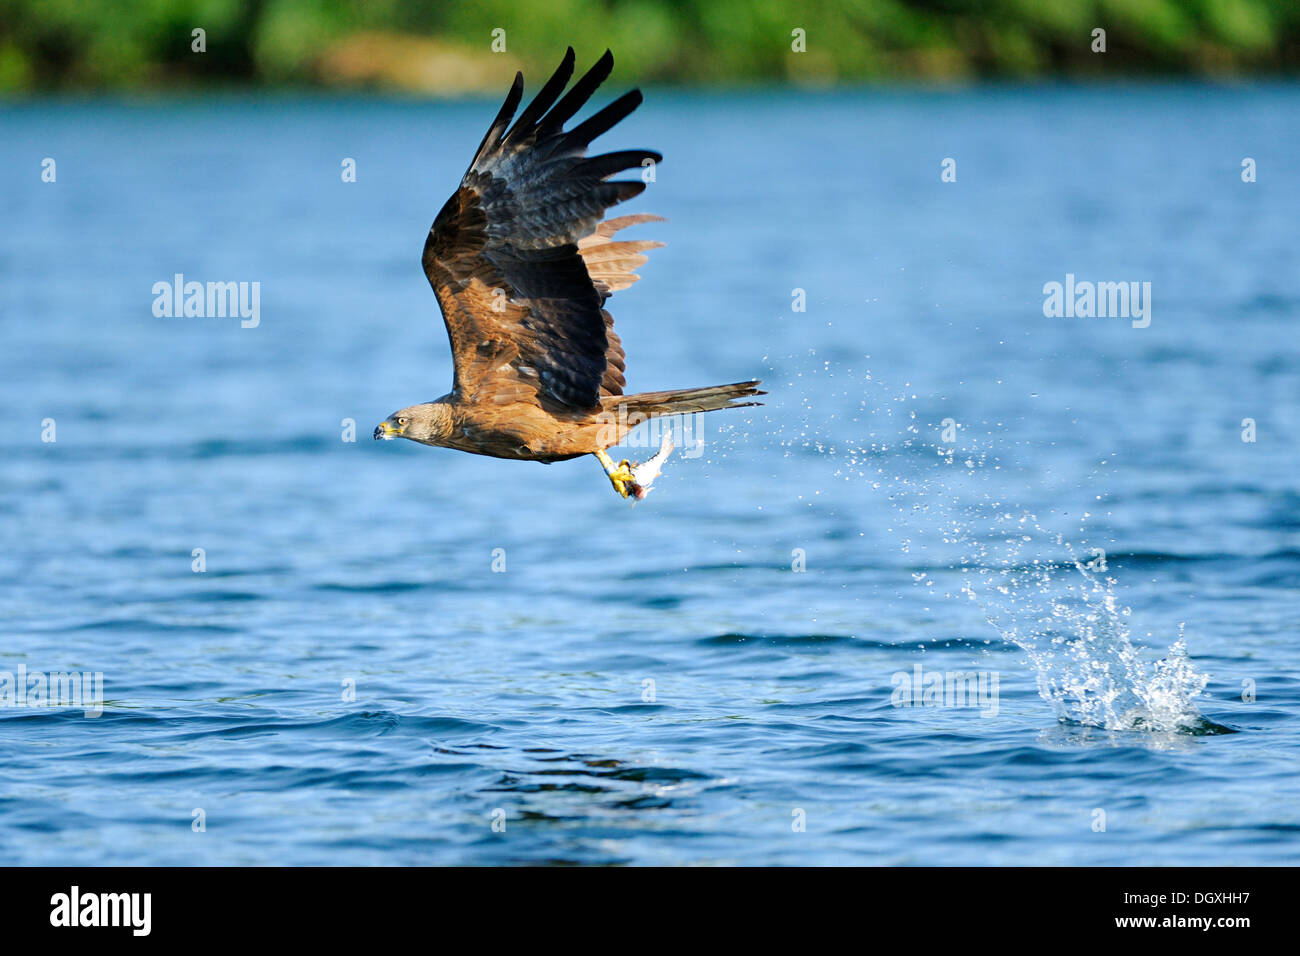 Black Kite (Milvus migrans), with fish in its talons, Schmaler Luzin lake, Feldberg, Mecklenburg-Western Pomerania - Stock Image